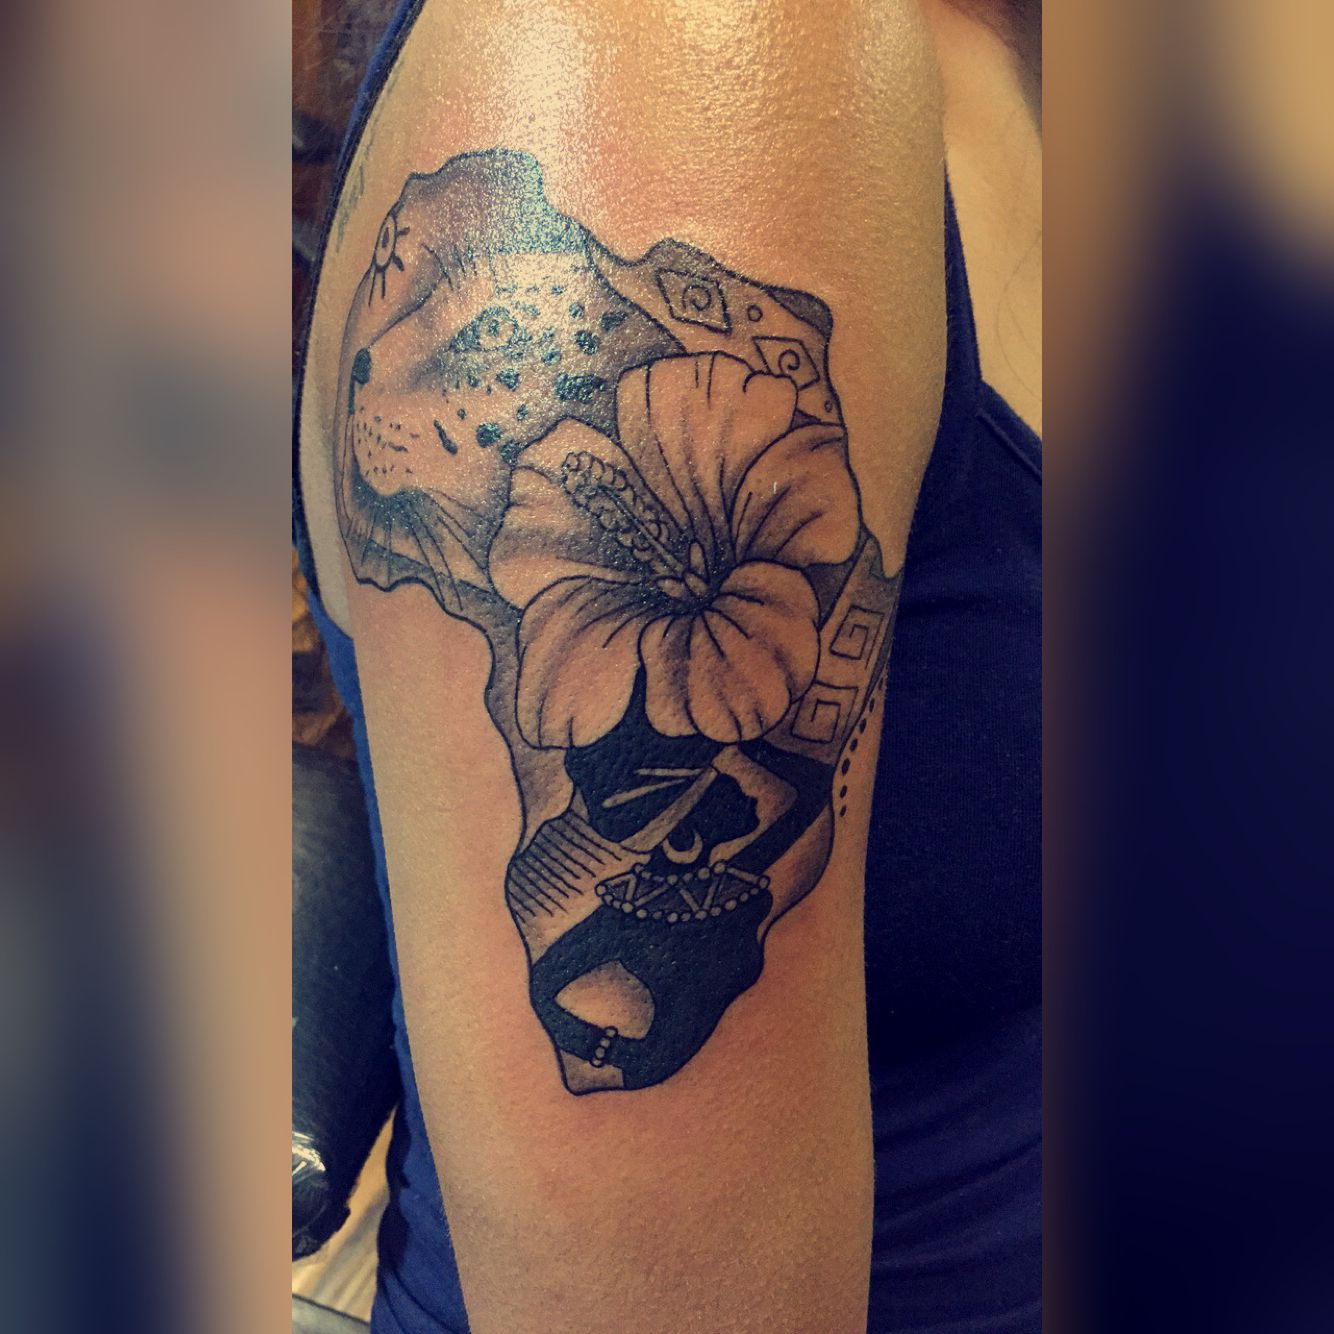 Africantattoo Tattoos Piercings African Tattoo Ideas And Designs